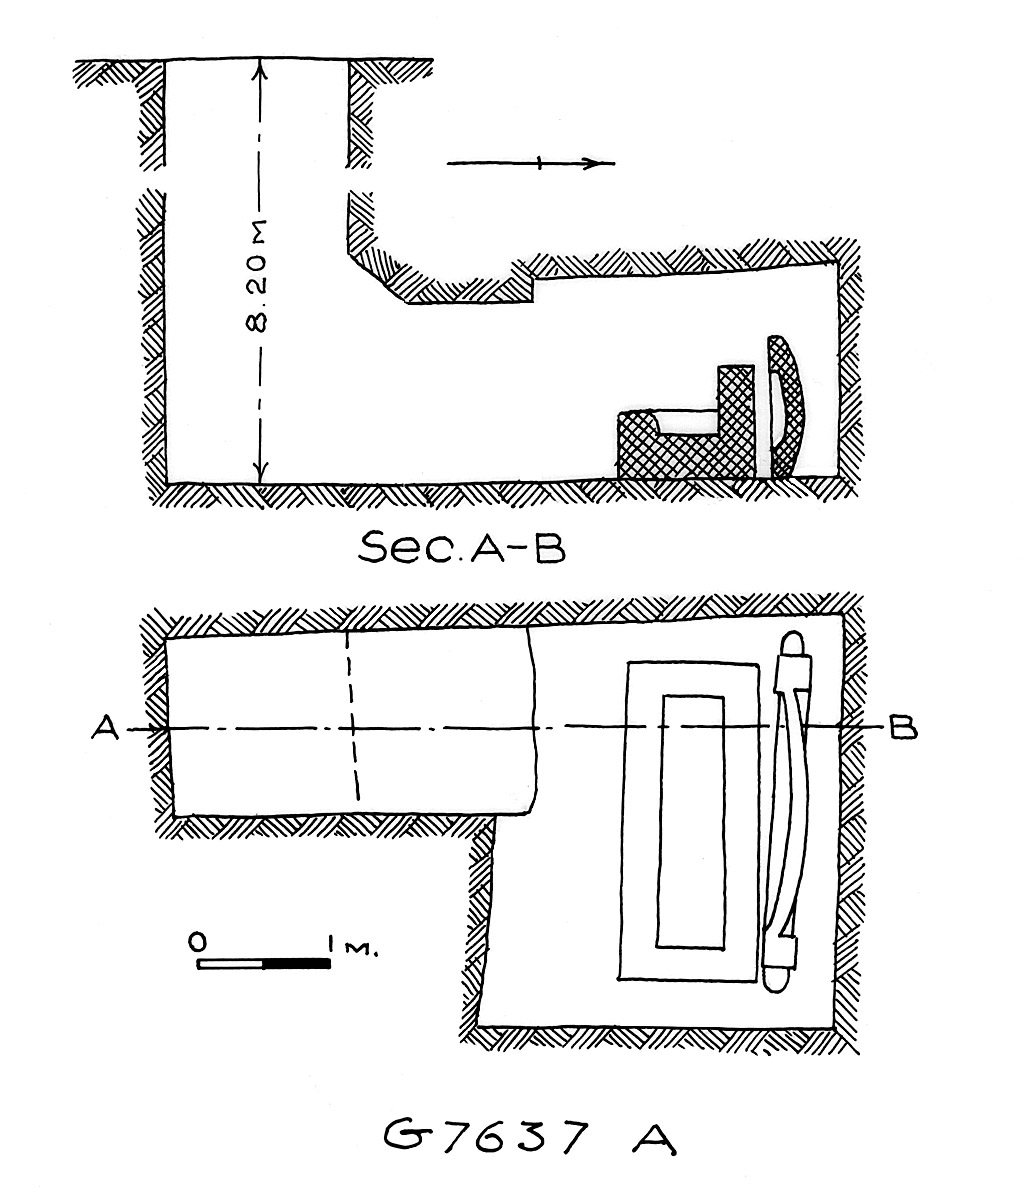 Maps and plans: G 7637, Shaft A